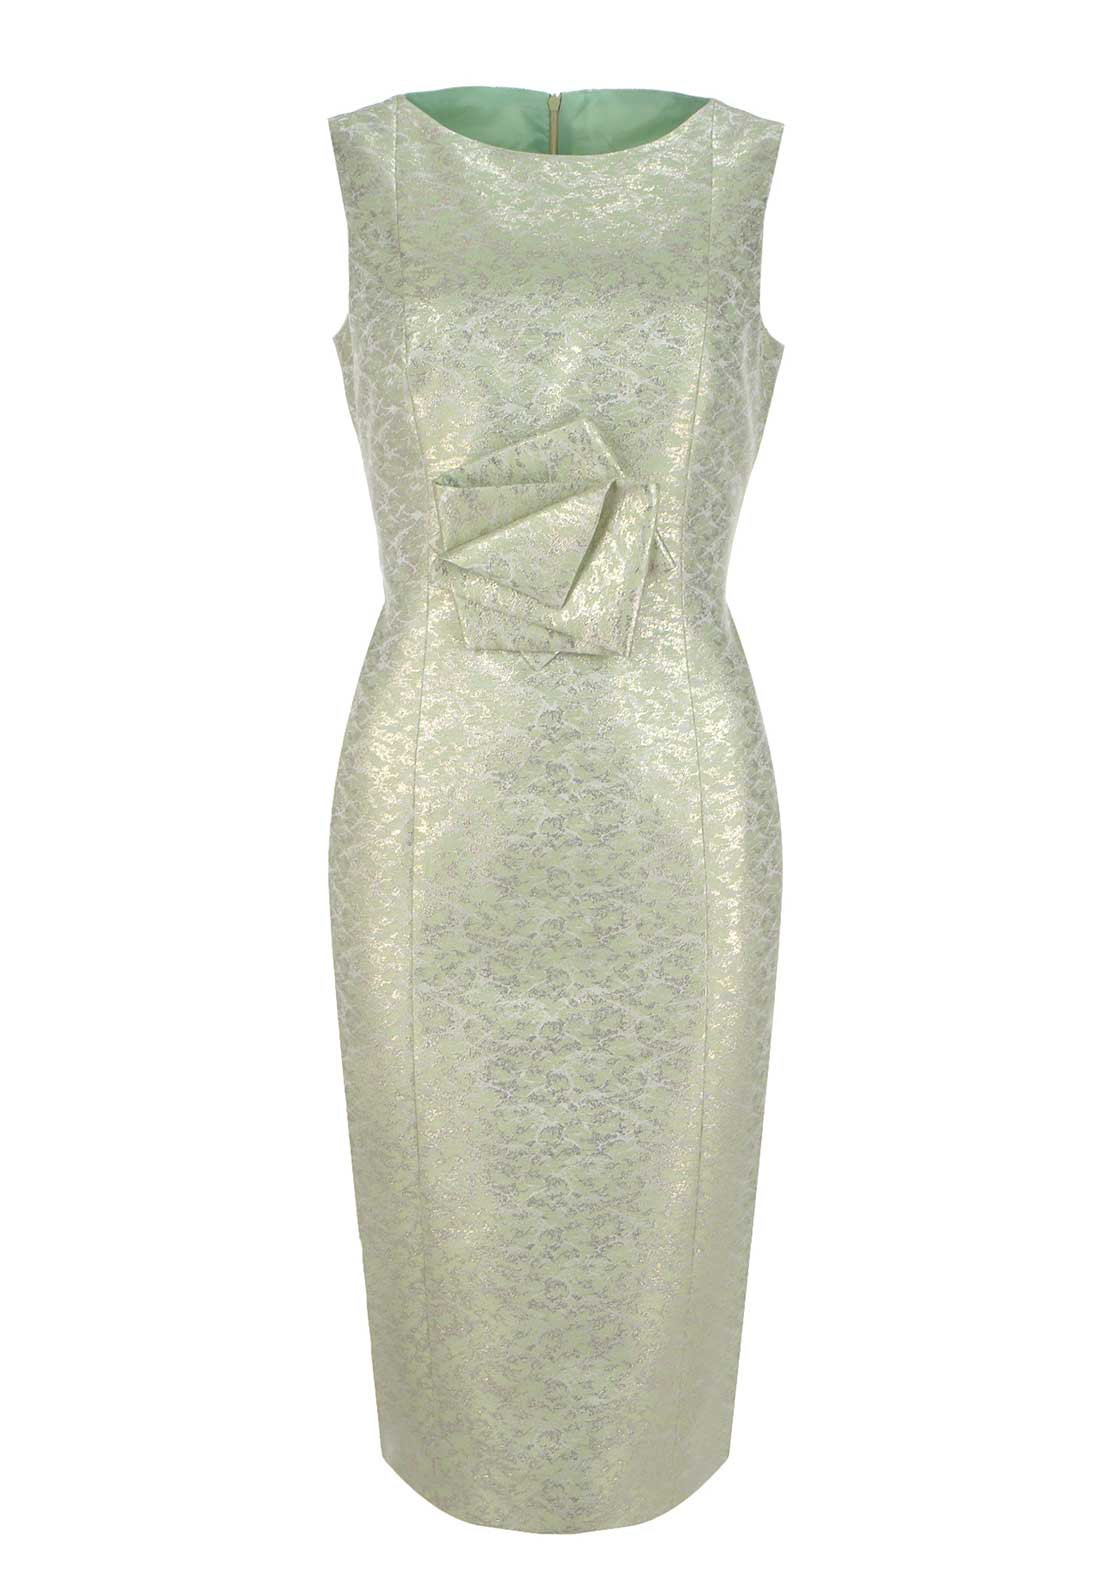 Fely Campo Metallic Sleeveless Pencil Dress, Mint Green